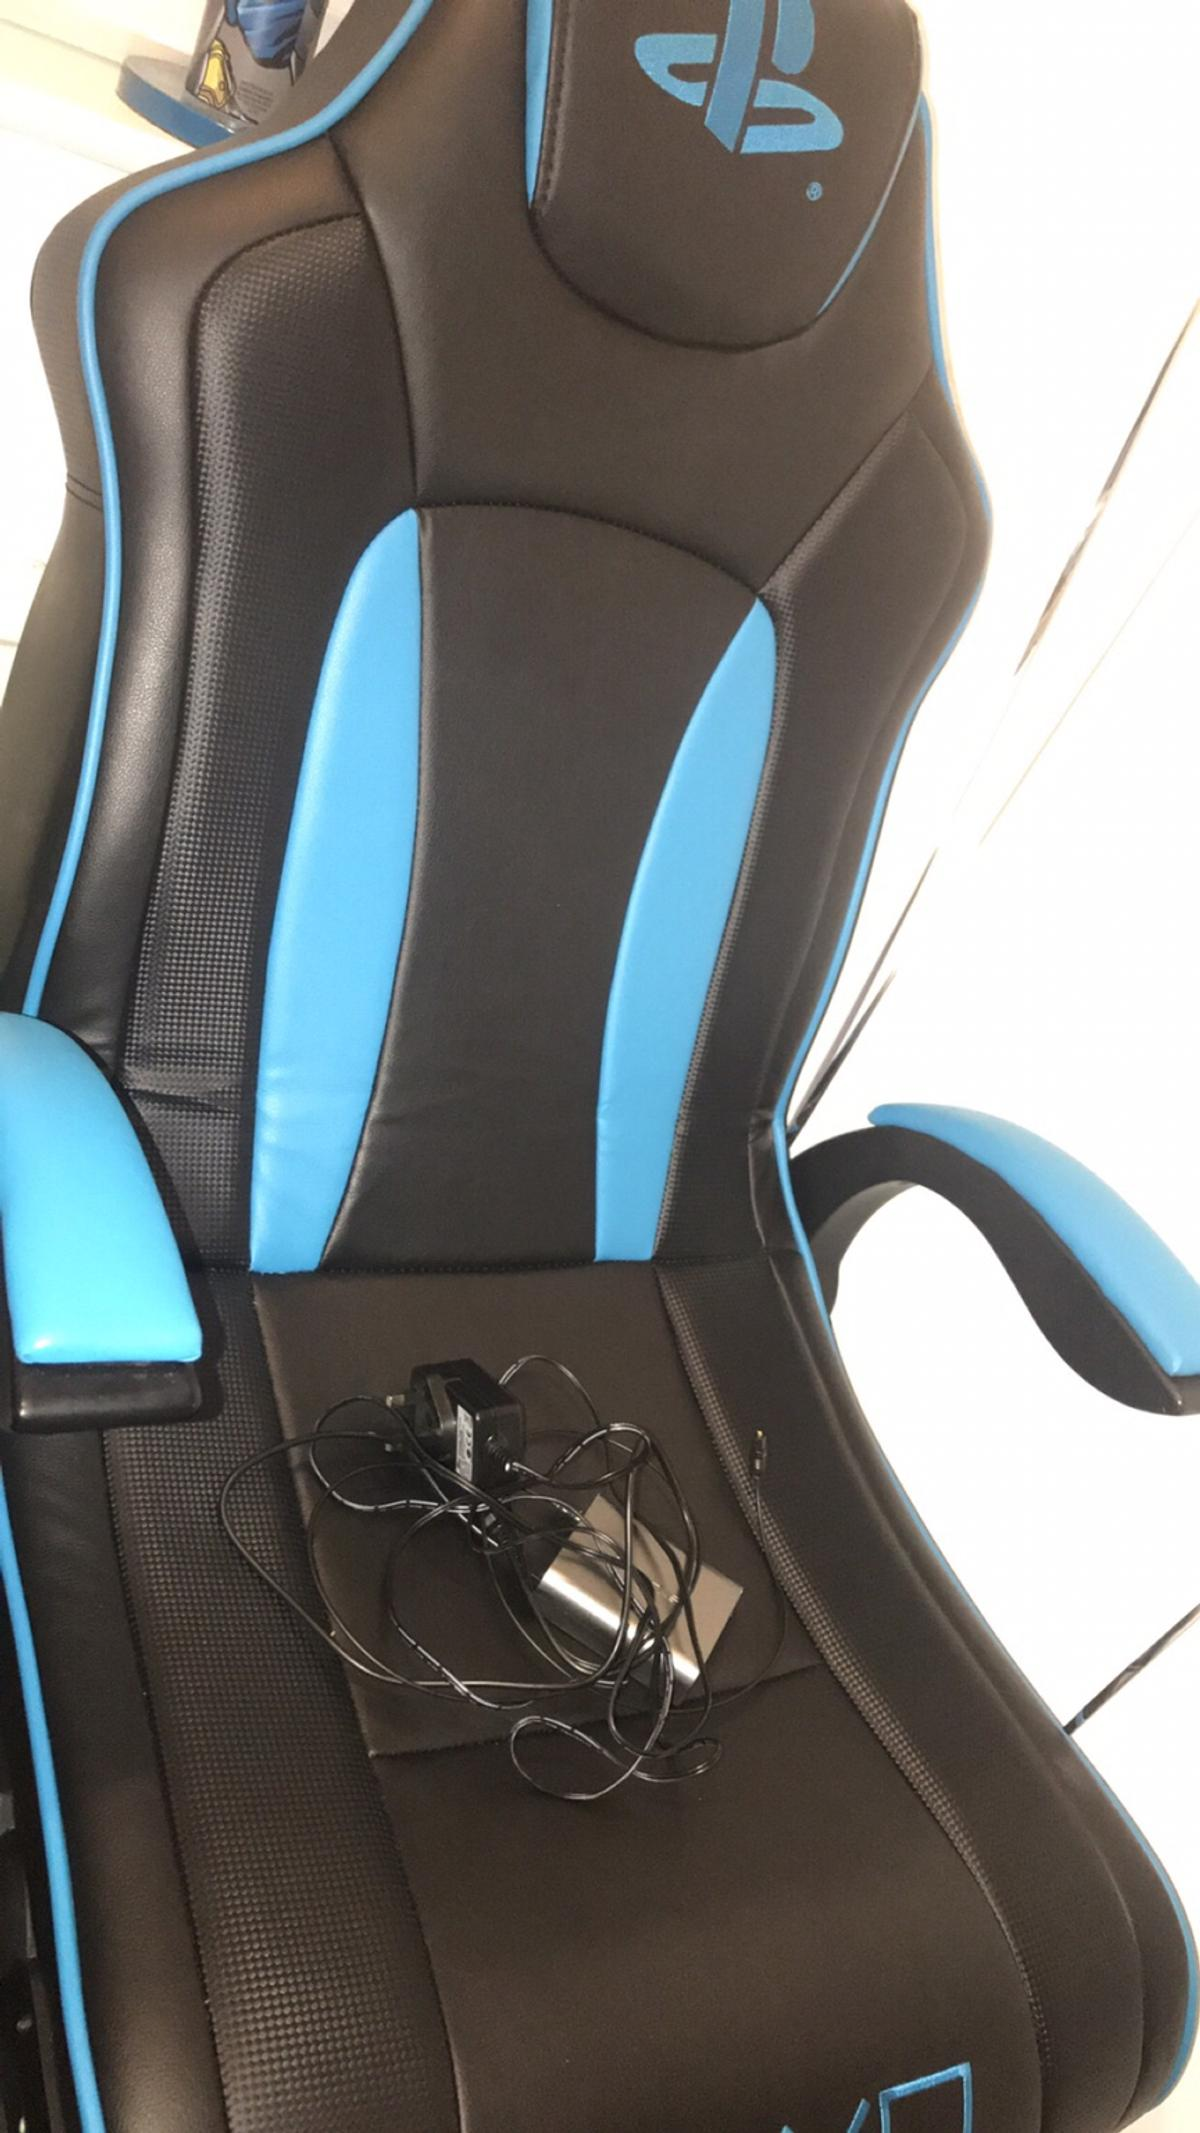 Remarkable X Rocker Ps4 Gaming Chair In Se18 London Fur 50 00 Zum Pdpeps Interior Chair Design Pdpepsorg